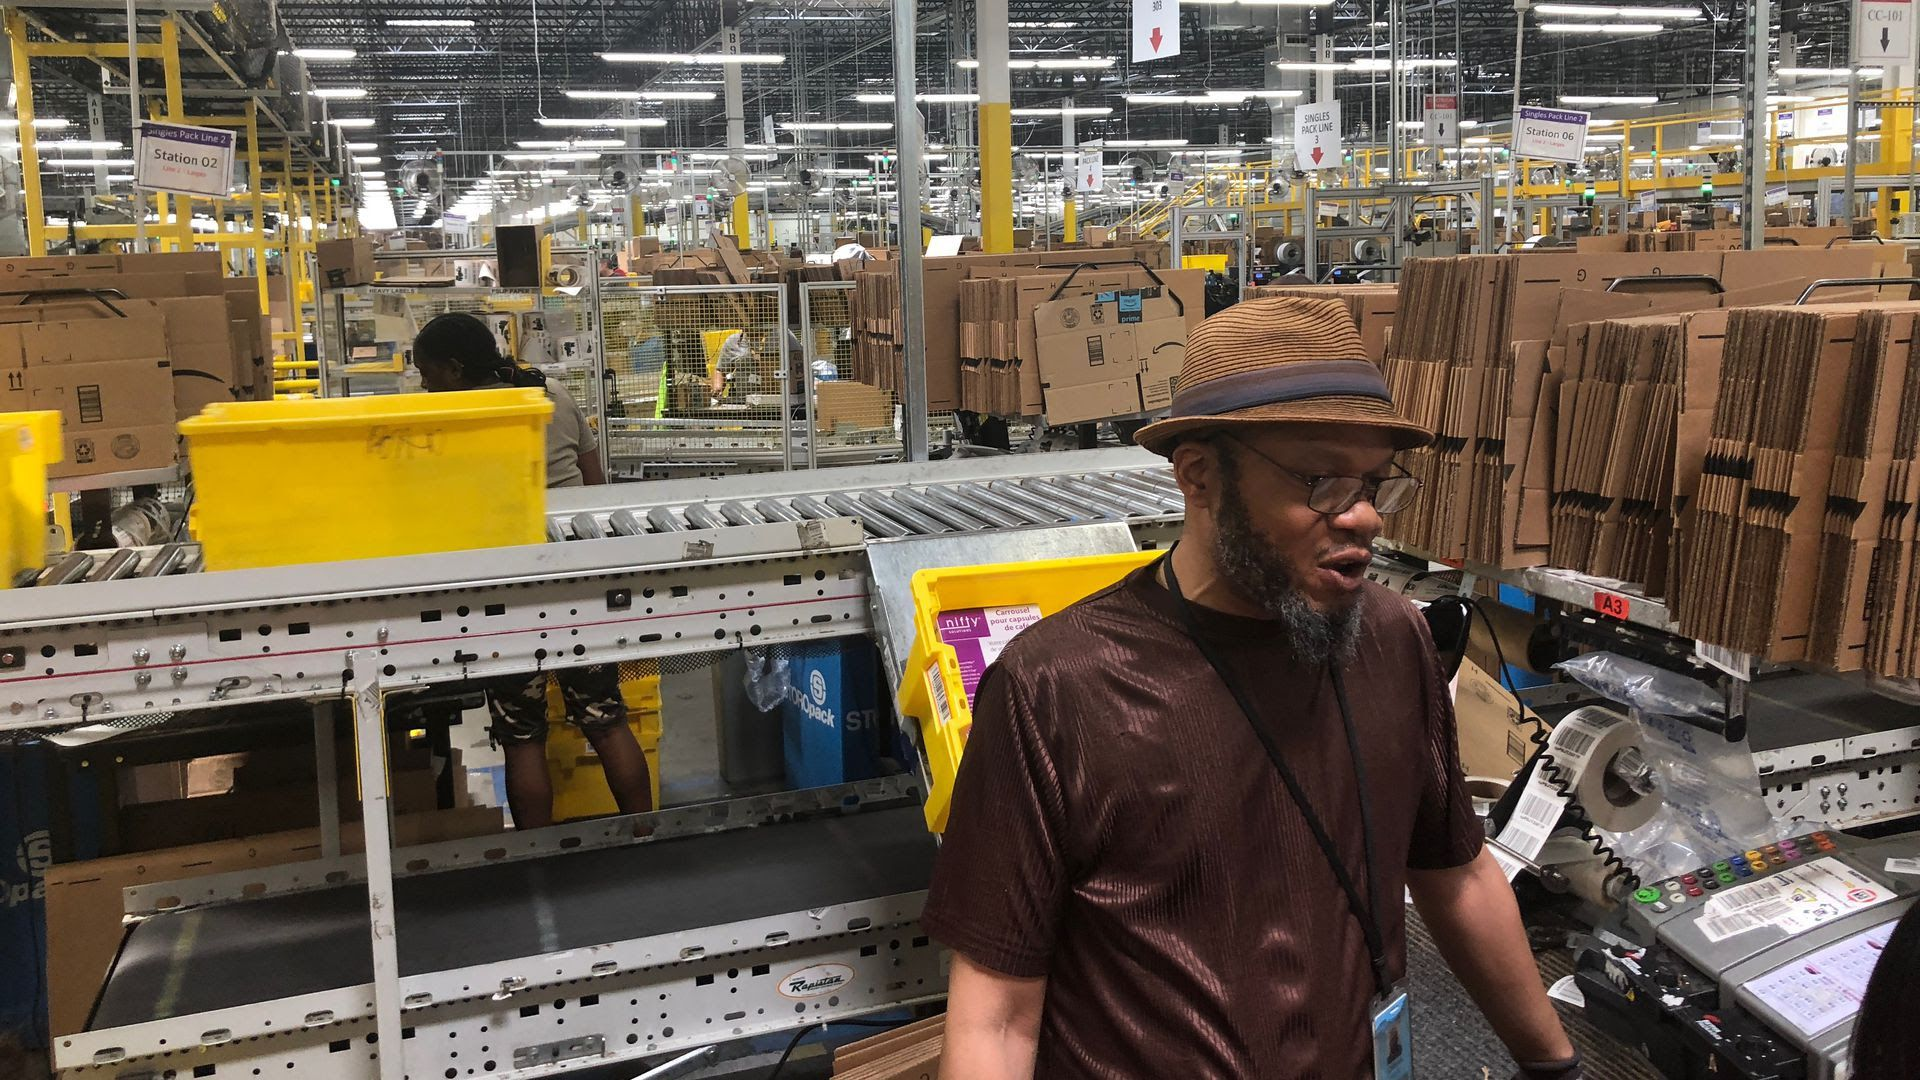 A worker at an Amazon warehouse in Baltimore